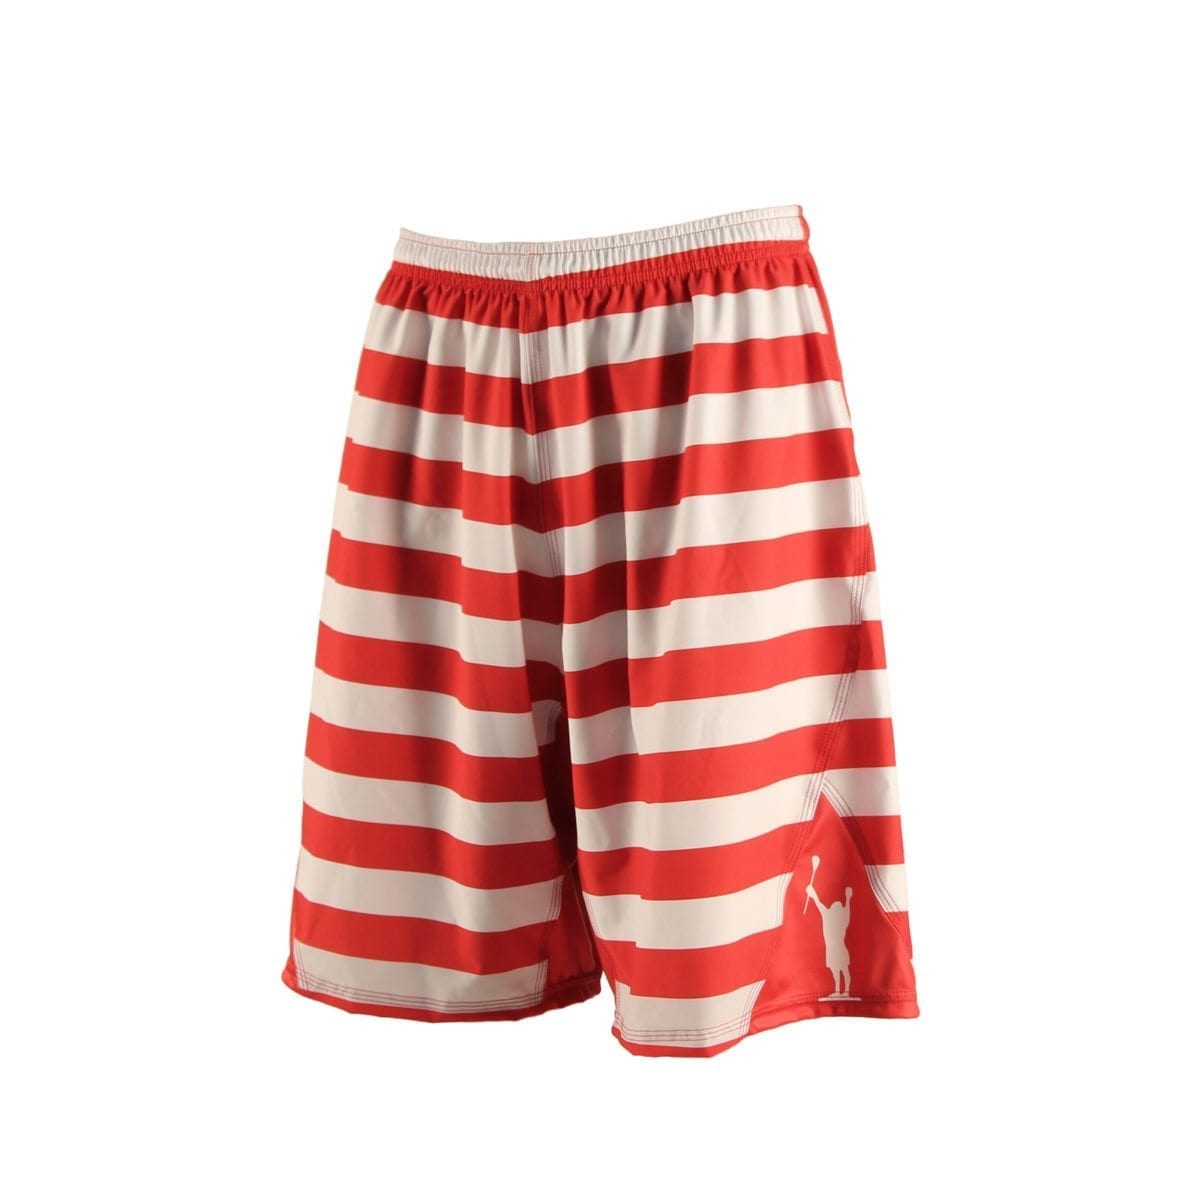 ADRLN All-American South Shorts